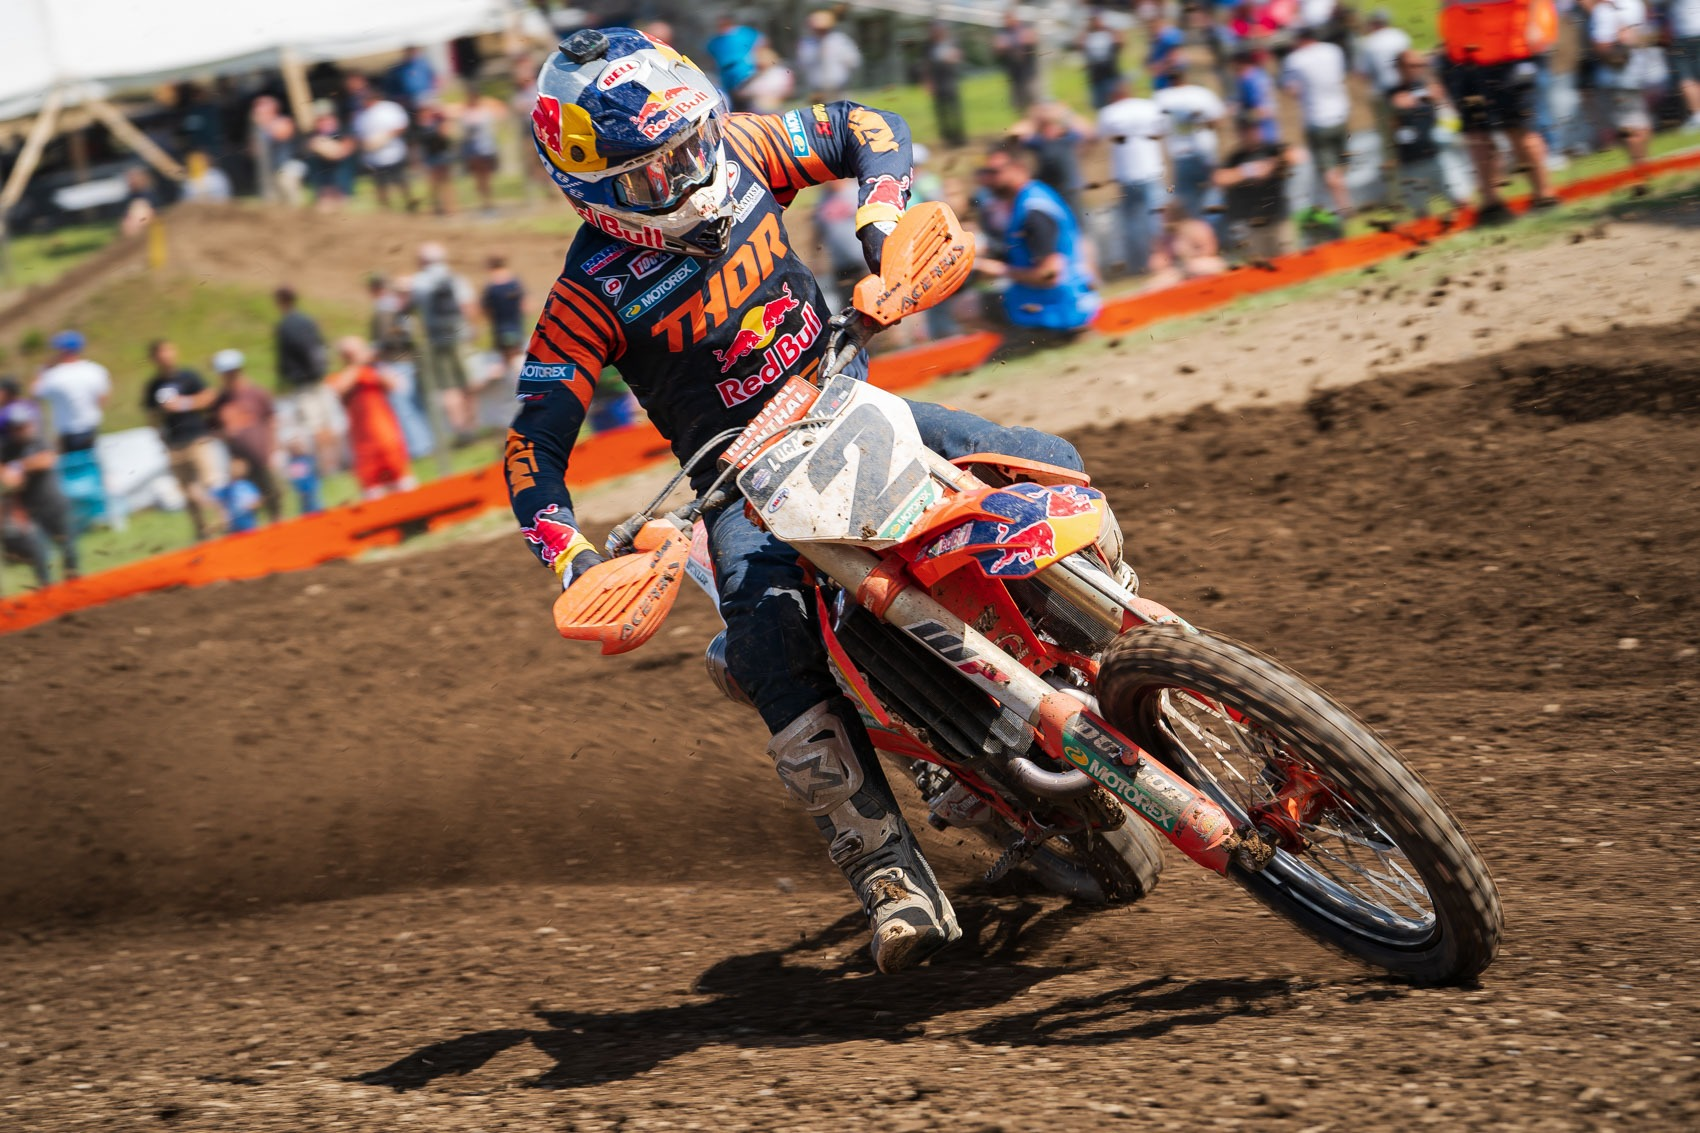 2019-Unadilla-Motocross_450-Race-Report_776